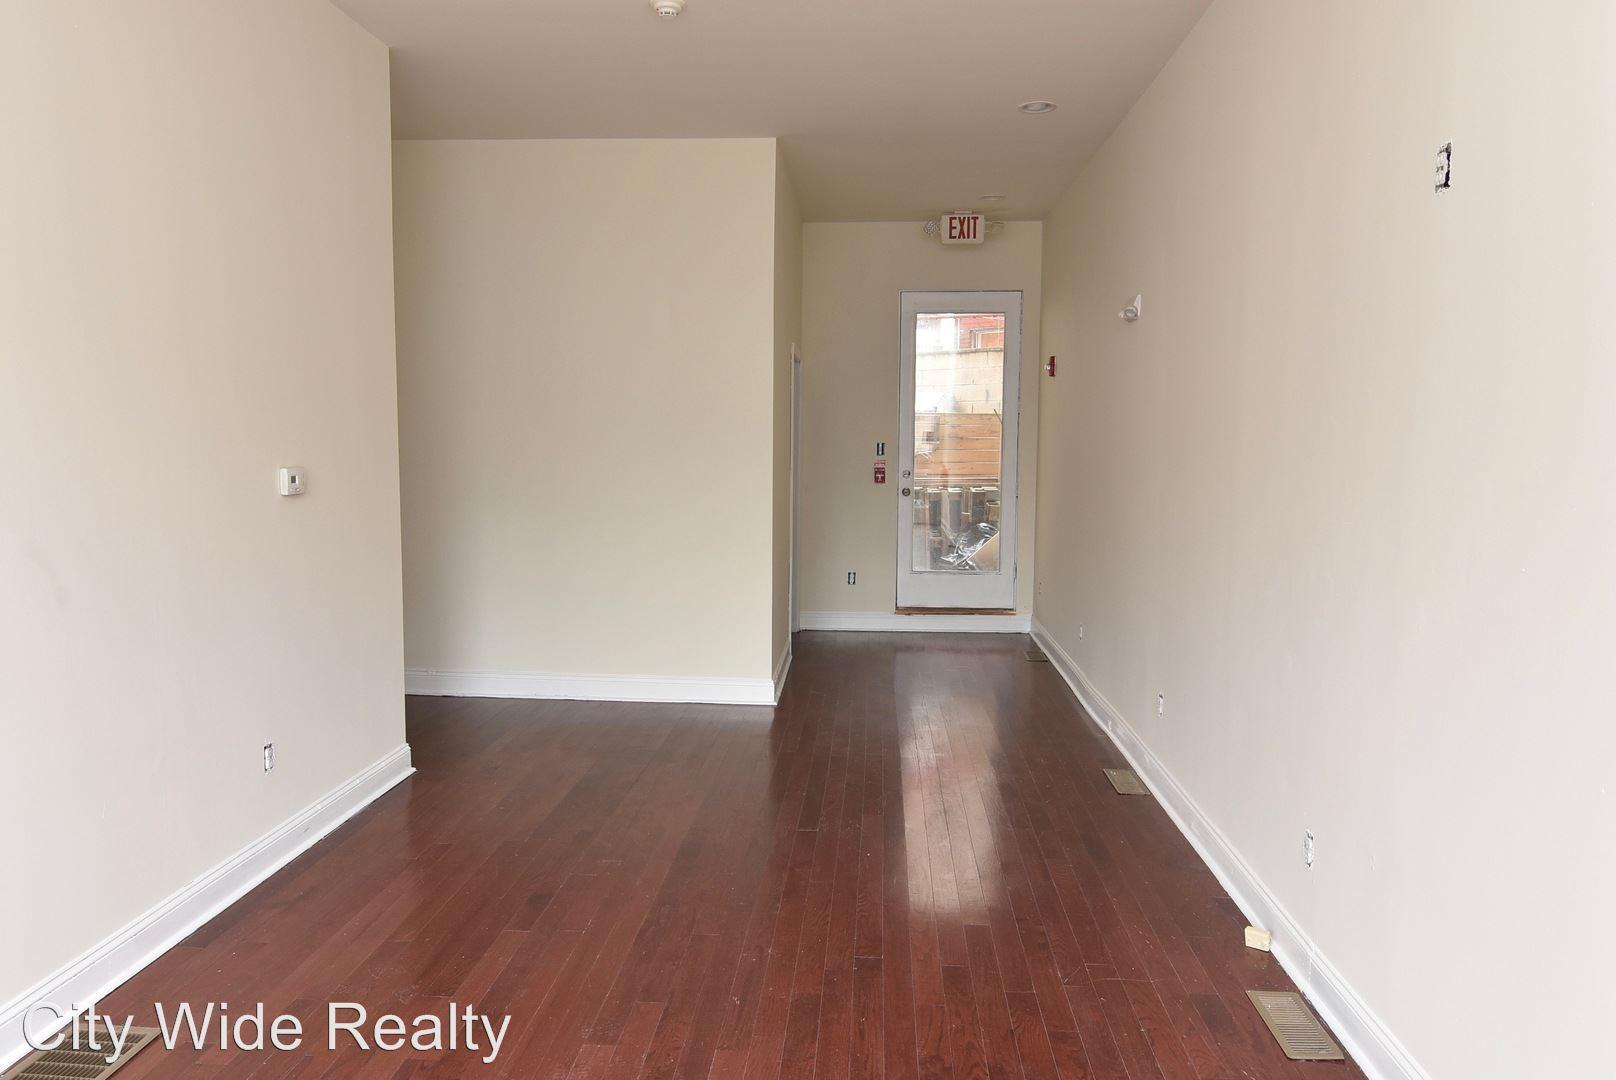 1613 Frankford ave - Unit 1